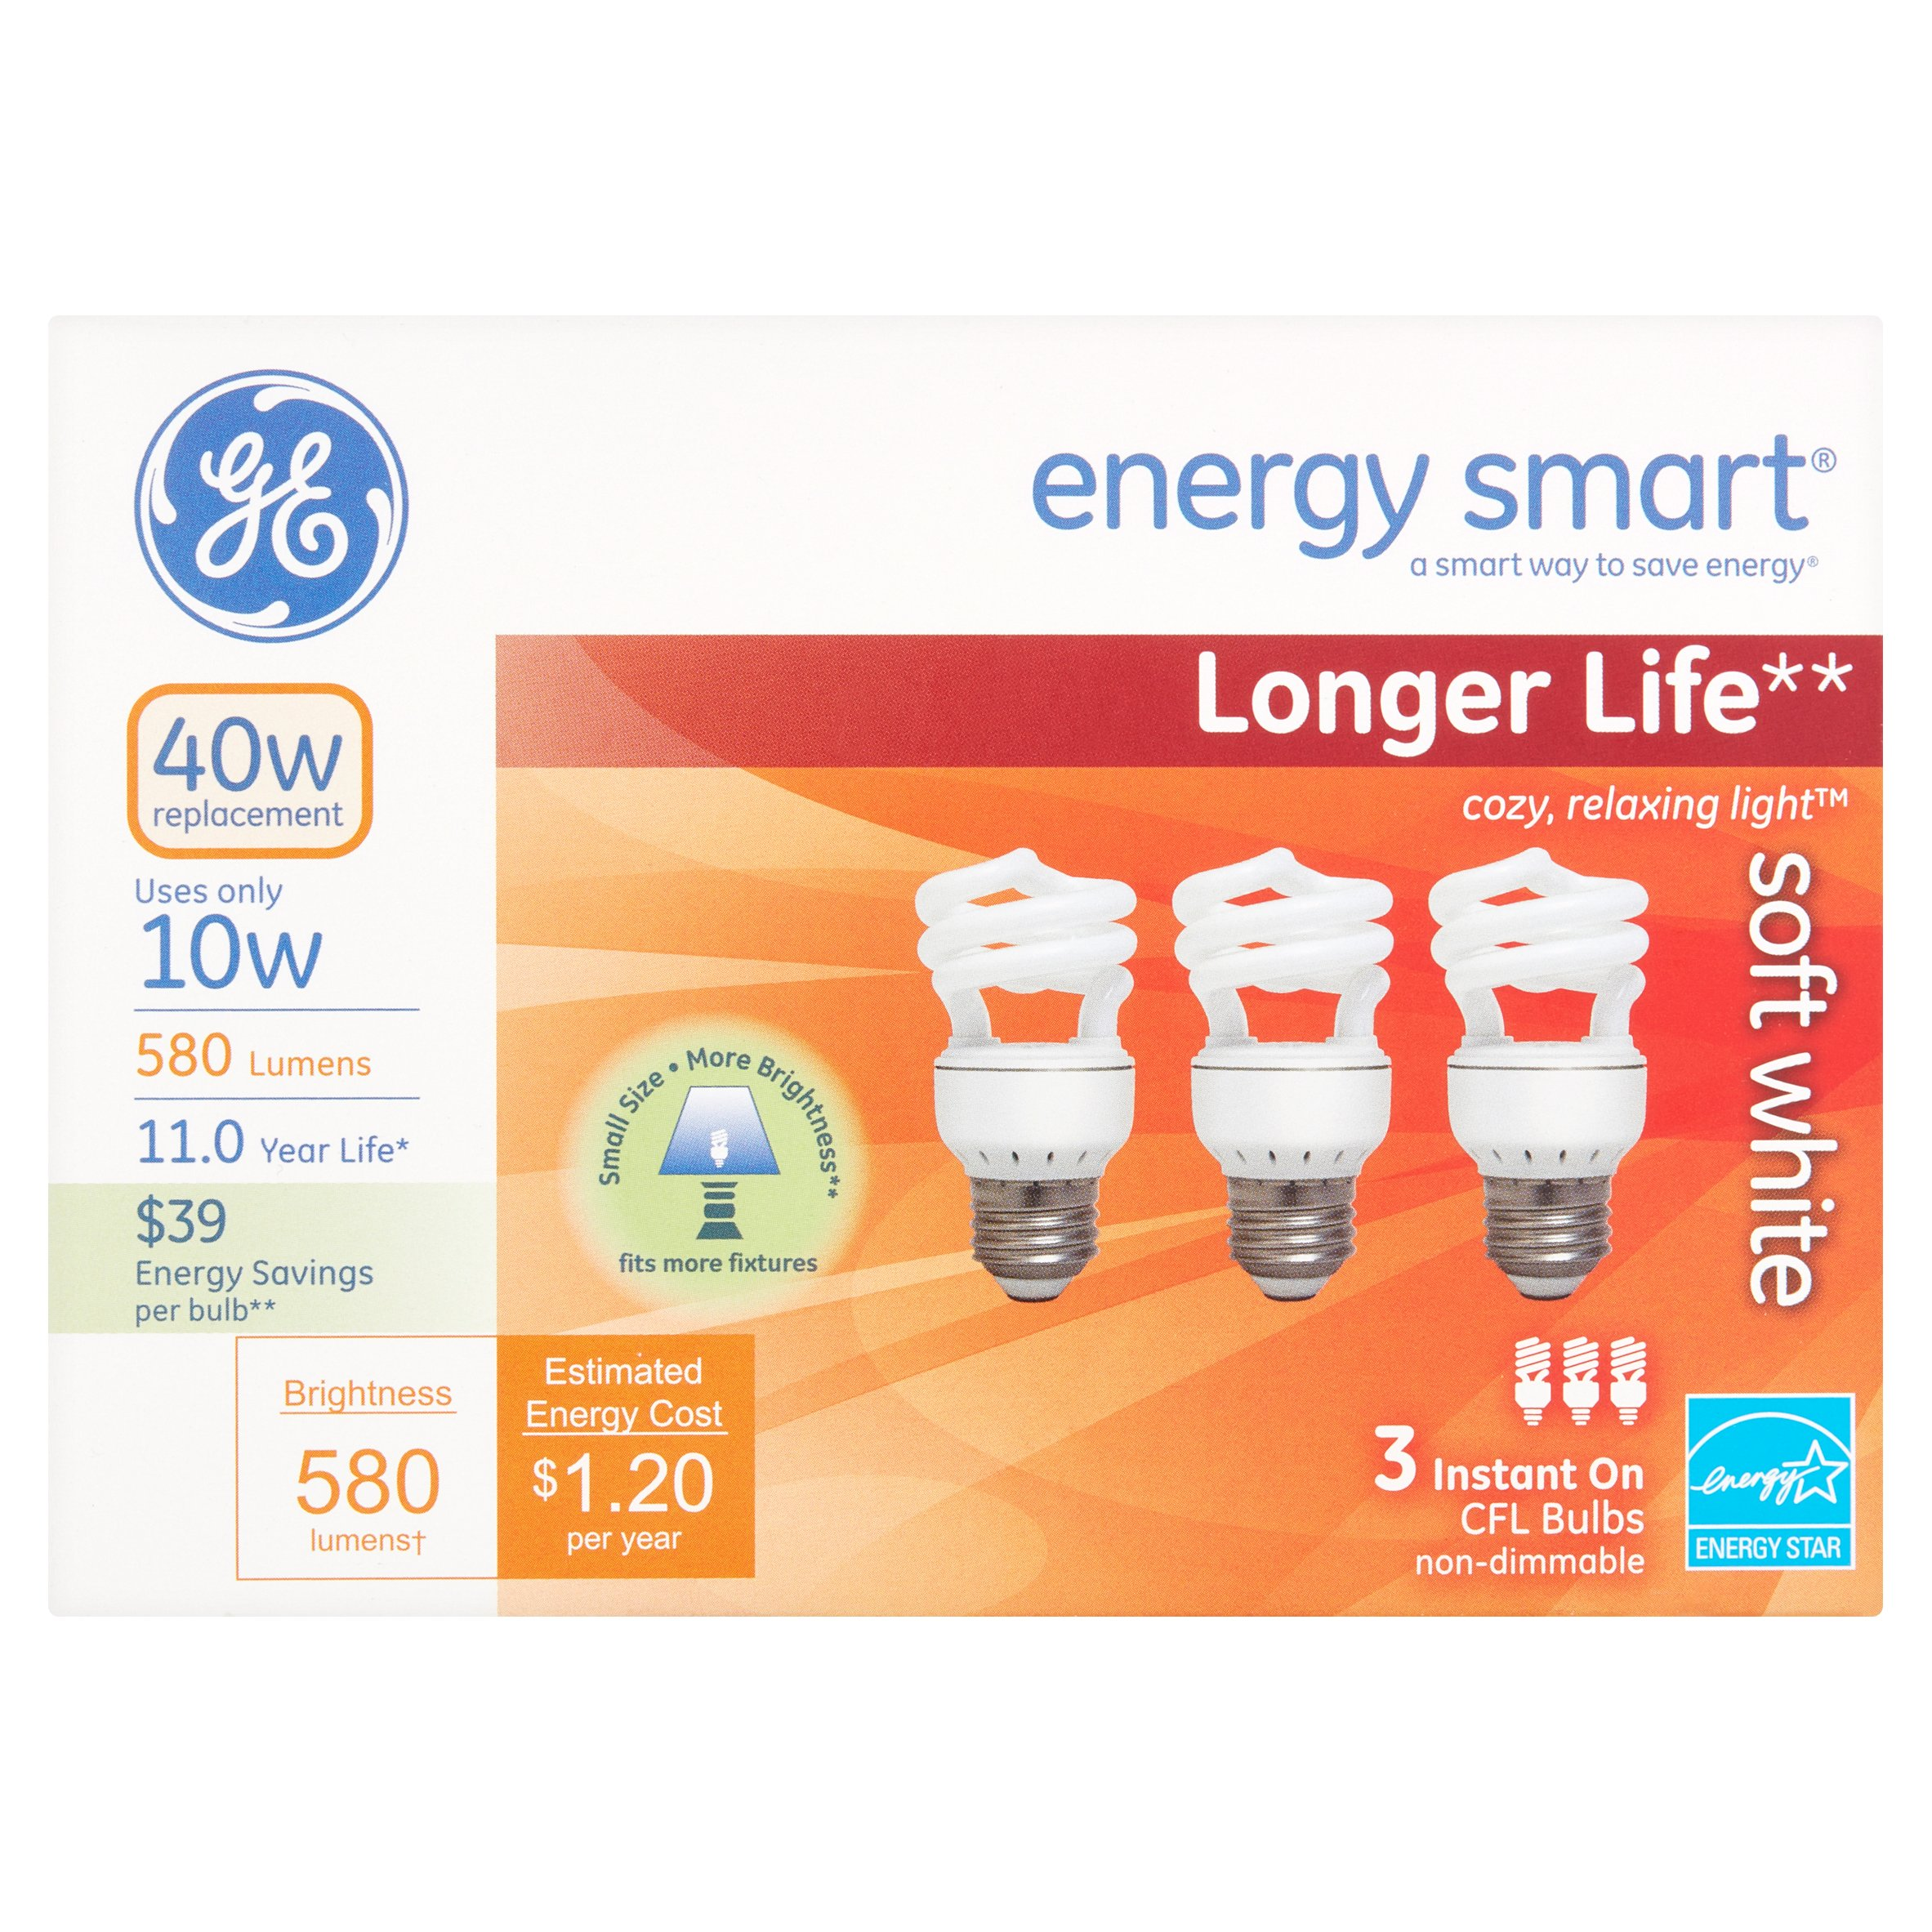 GE Energy Smart 10W 580 Lumens Soft White Instant On CFL Bulbs, 3 count